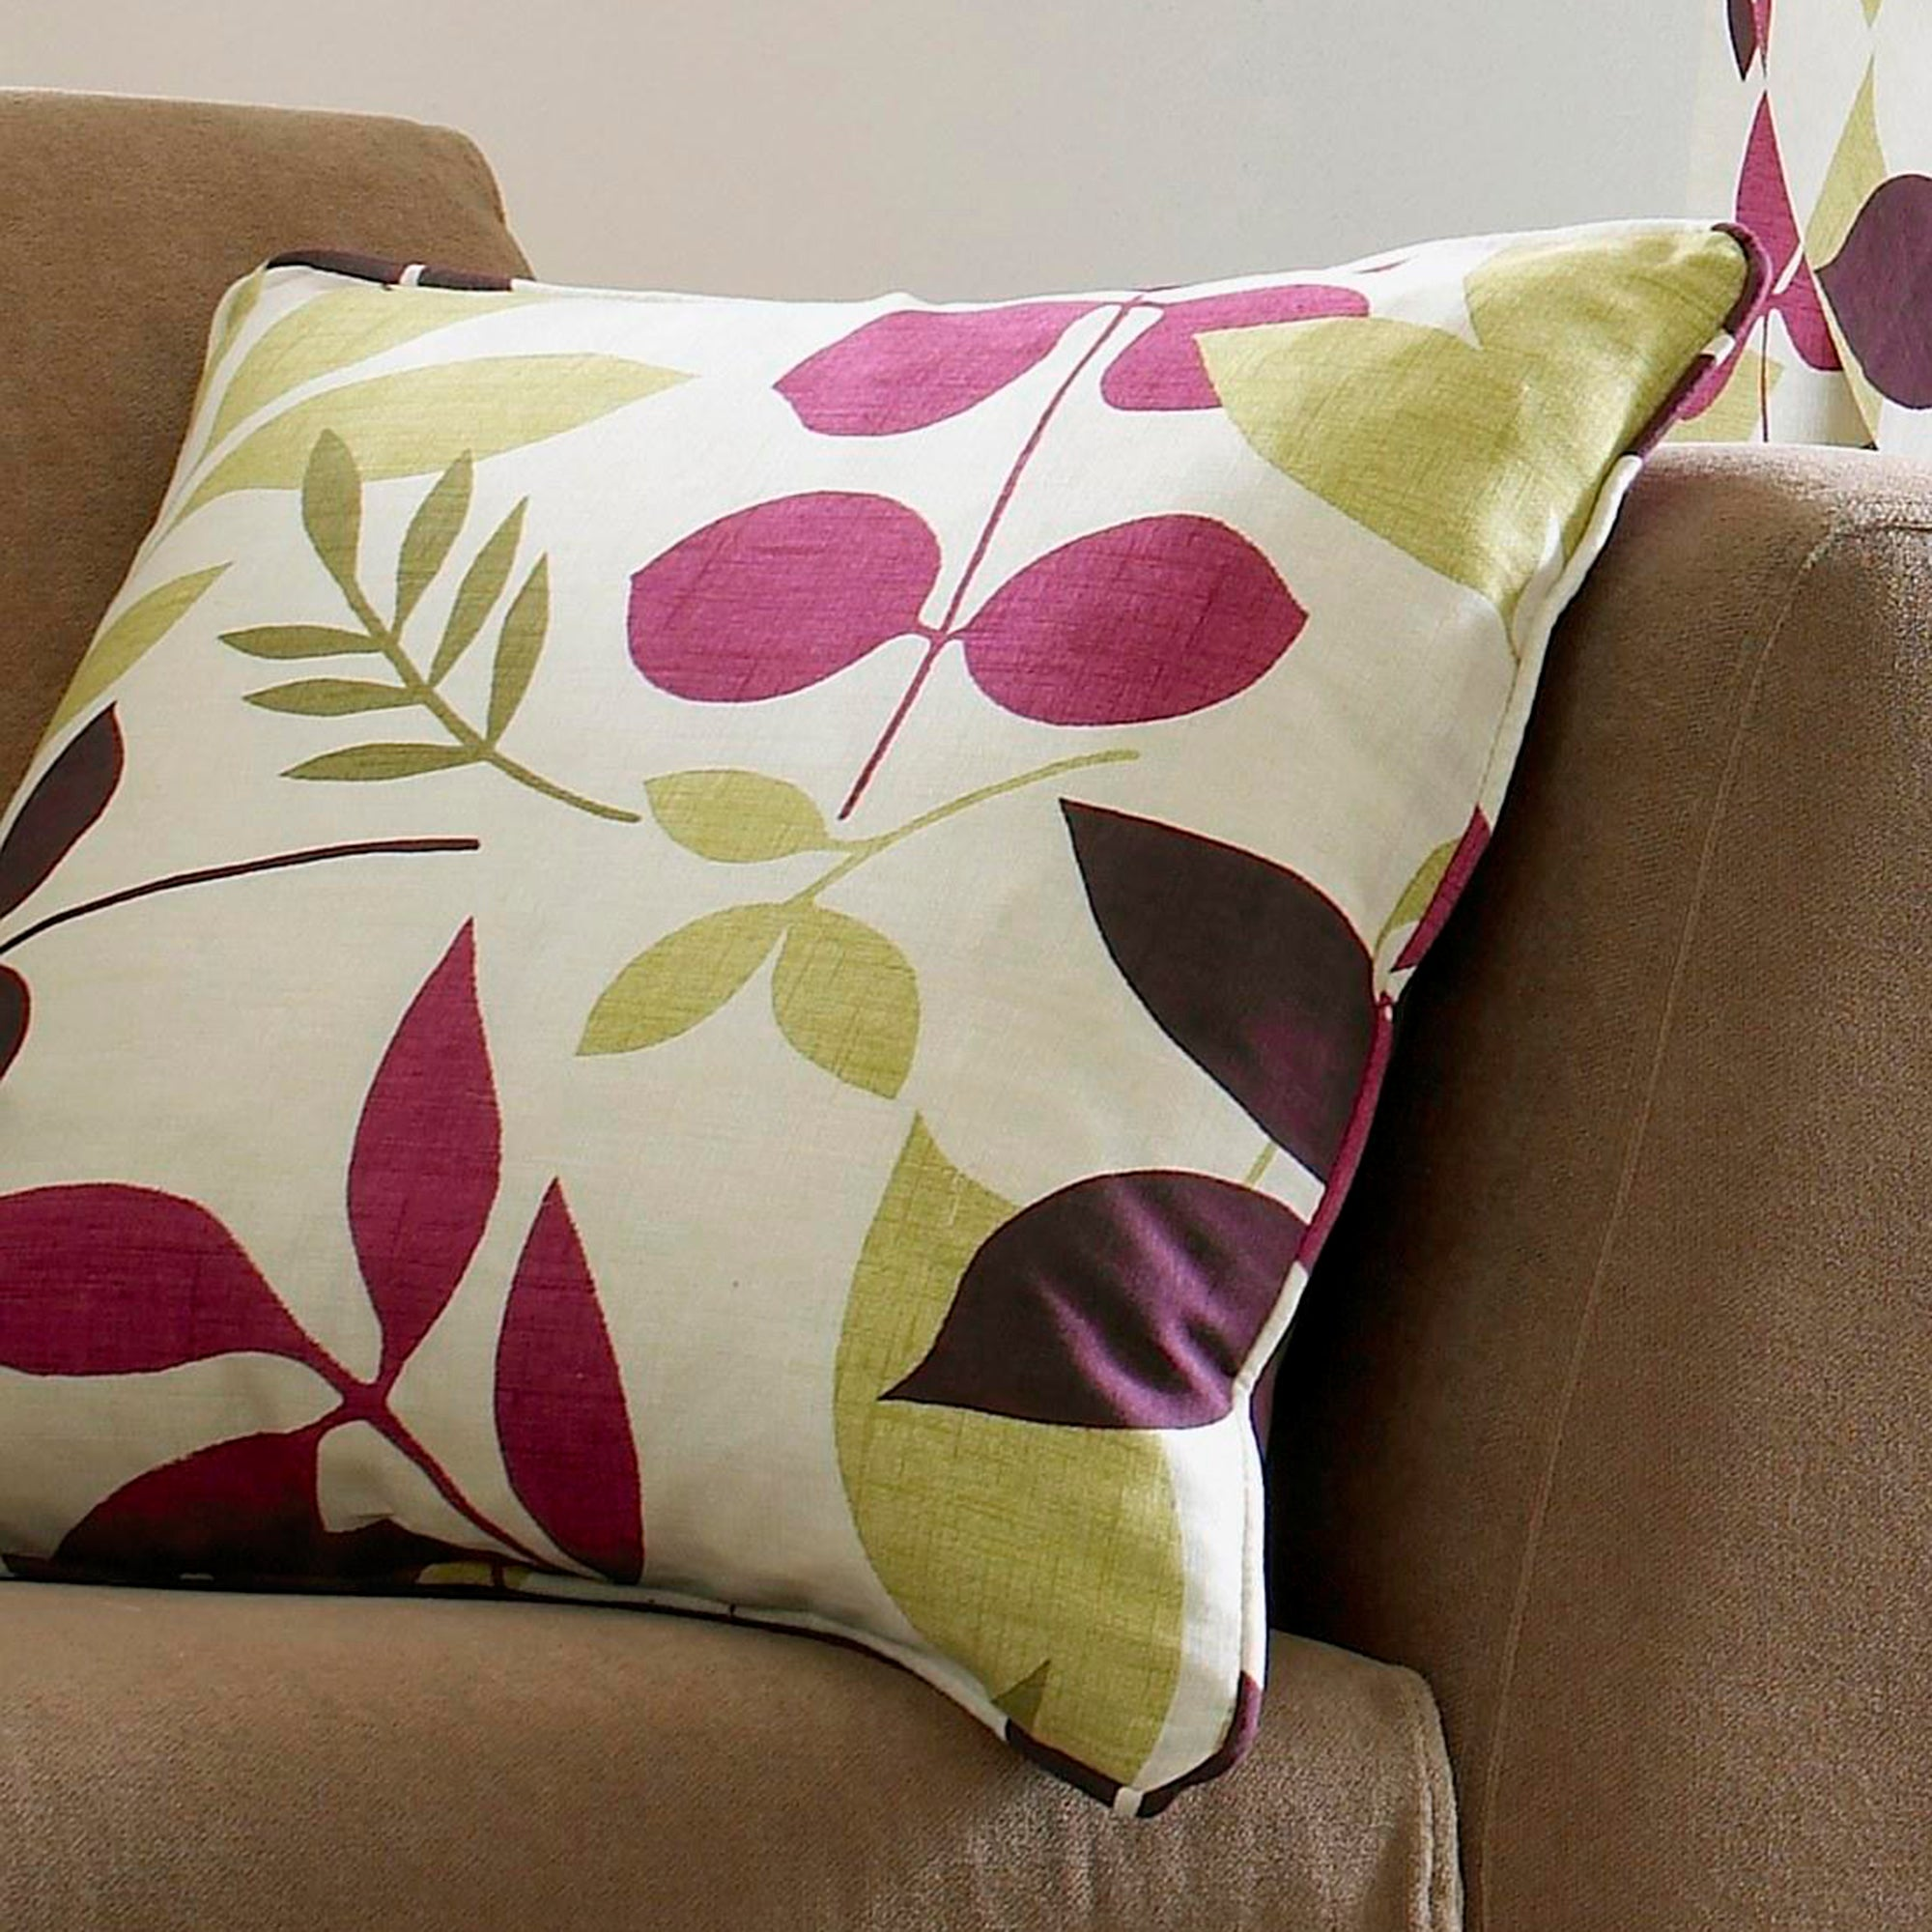 Plum Jakarta Collection Cushion